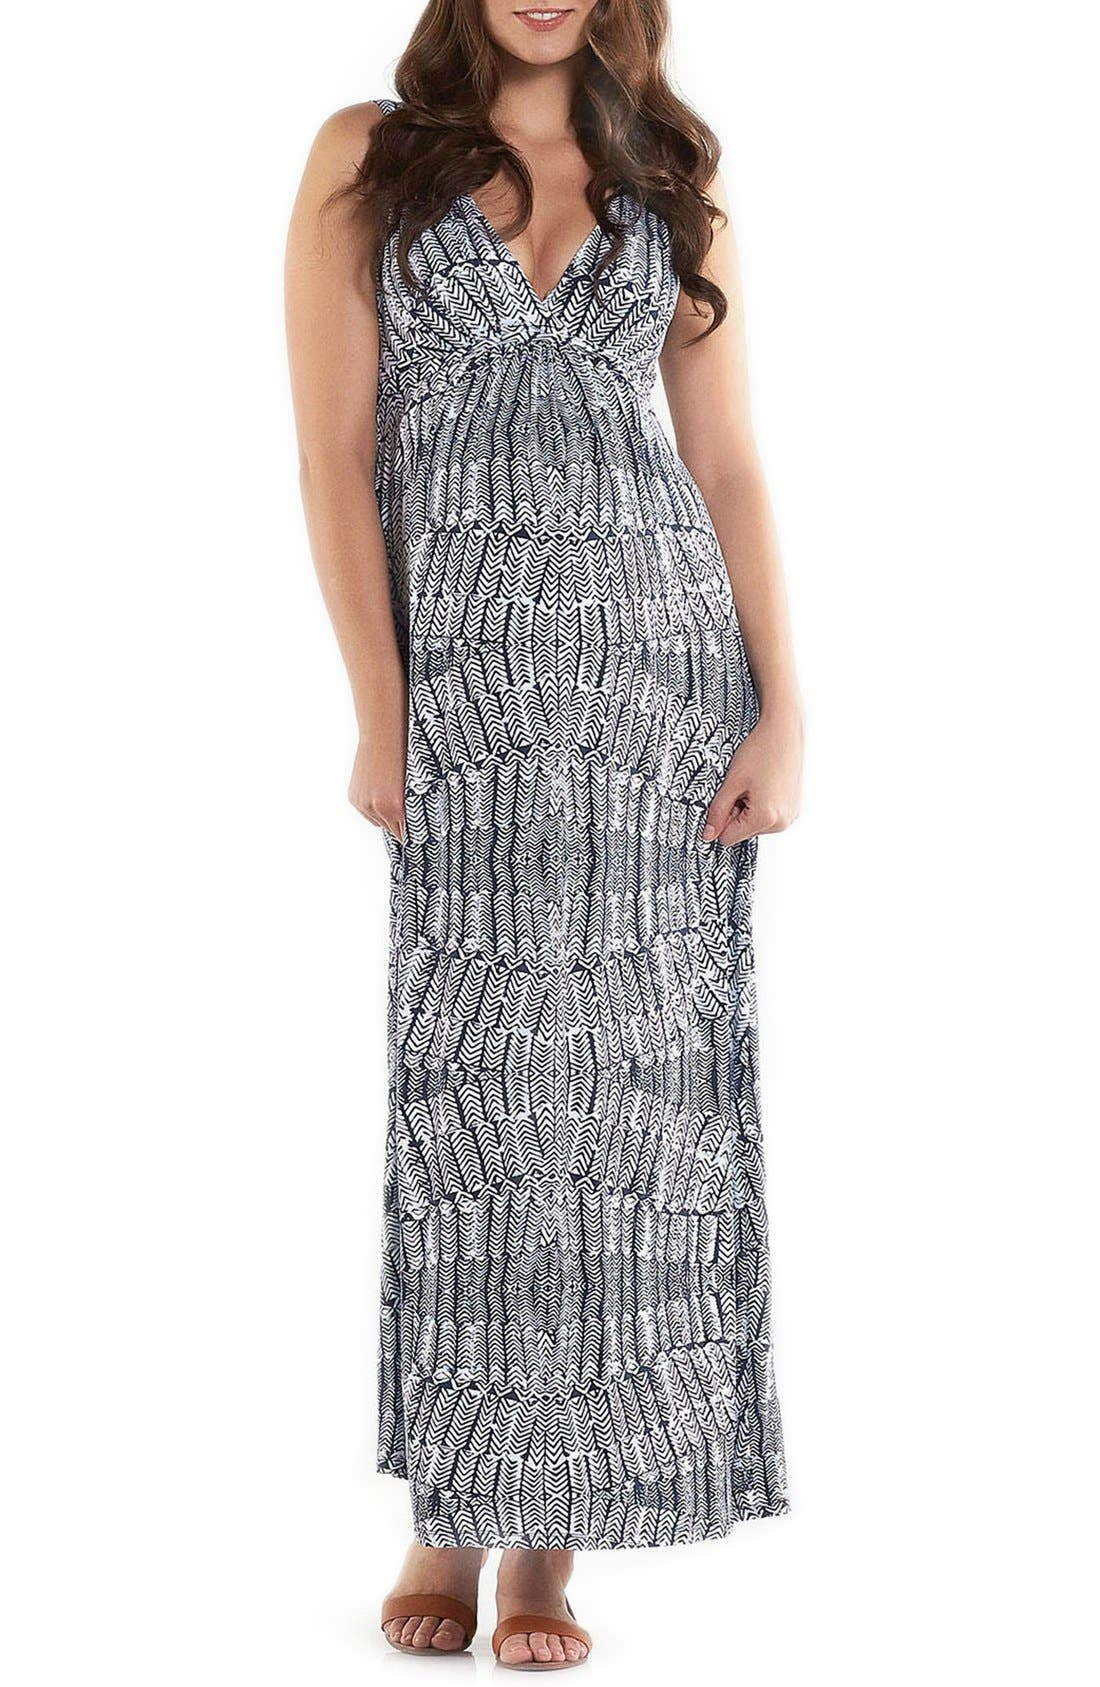 Tart Maternity 'Chloe' Maternity Maxi Dress